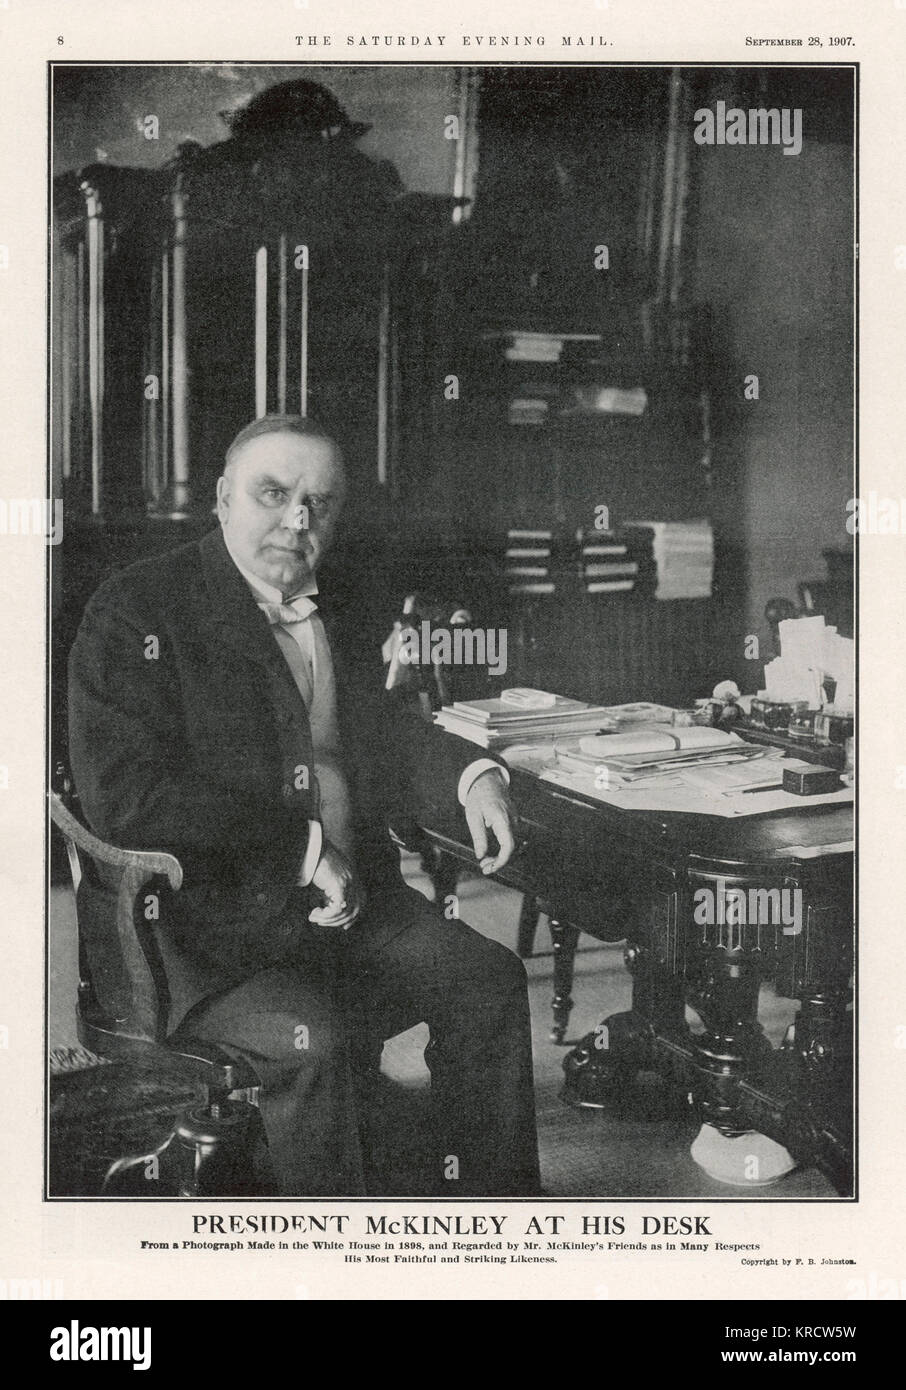 WILLIAM MCKINLEY President McKinley photographed at his desk in the White House in 1898. Date: 1843 - 1901 - Stock Image